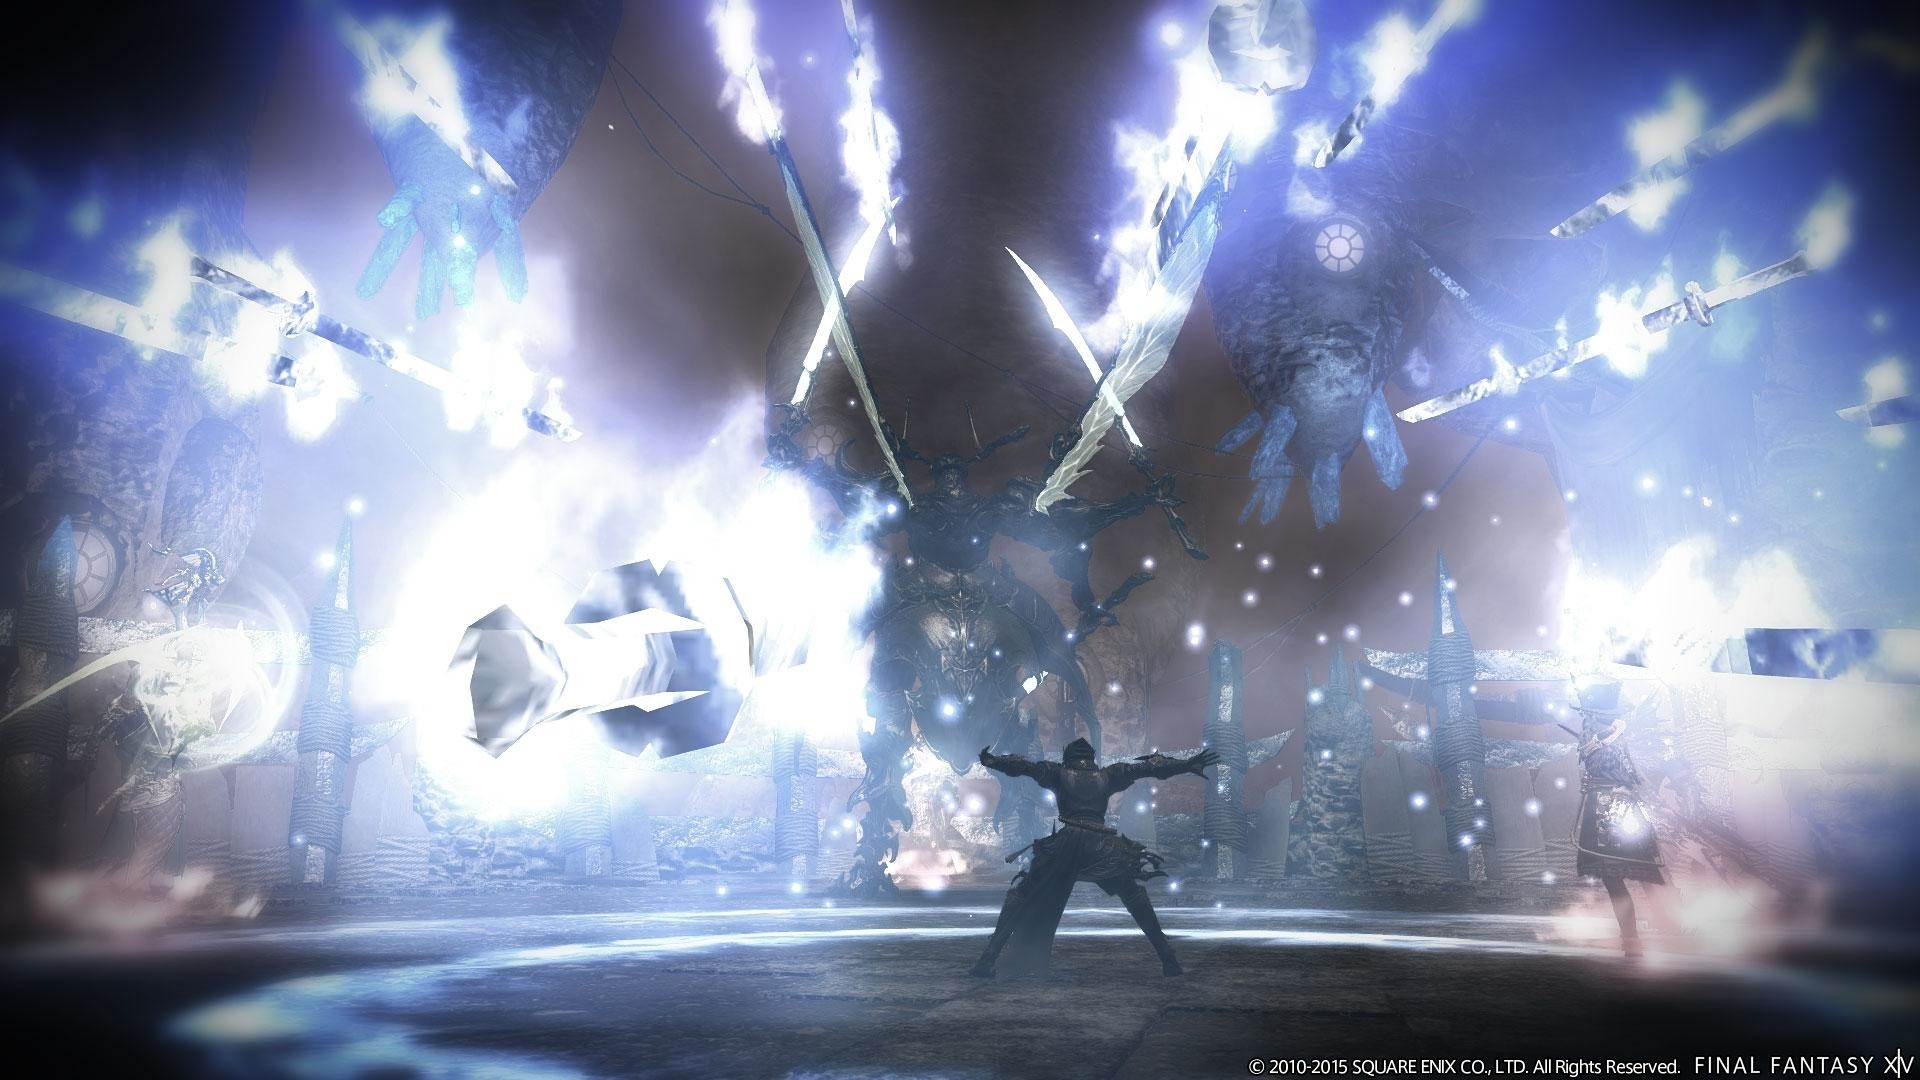 Square Enix announces Final Fantasy XIV has over 5 million registered users  worldwide